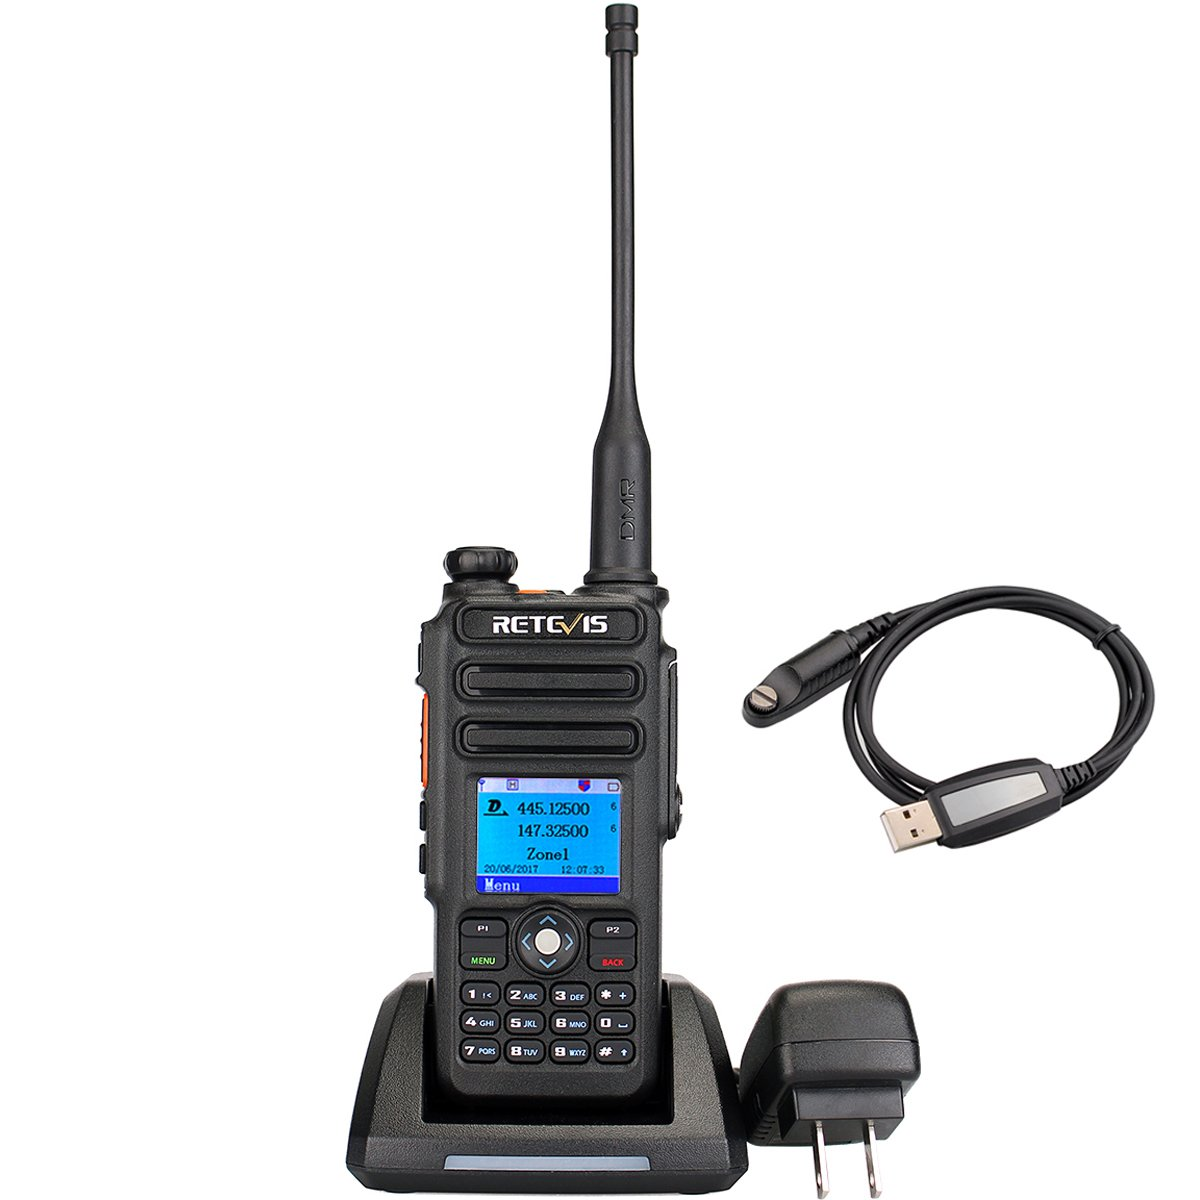 Retevis RT82 IP67 Waterproof Dual Band DMR Digital/Analog Two Way Radio 5W 136-174MHZ/400-480MHZ 3000 Channels 10000 Contacts Ham Amateur Radio with Record Function and Programming Cable by Retevis